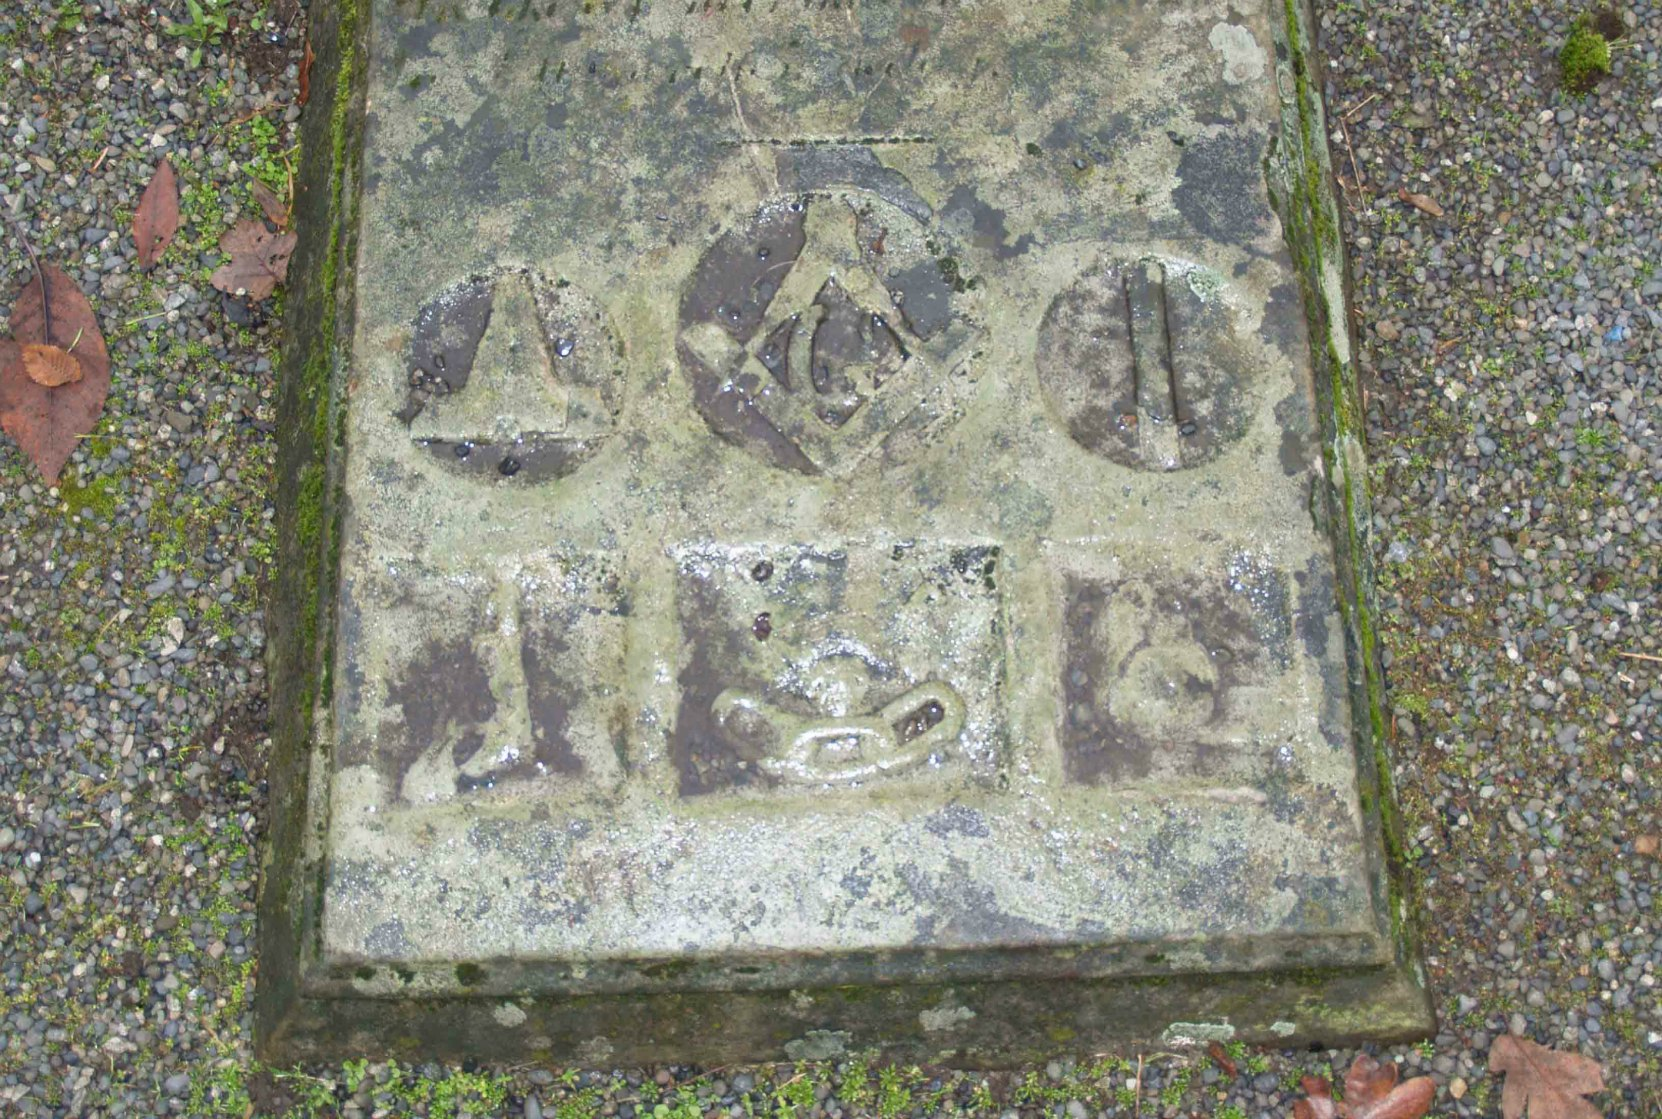 Masonic and I.O.O.F. Imagery on James Orr tombstone, Pioneer Square, Victoria, B.C.